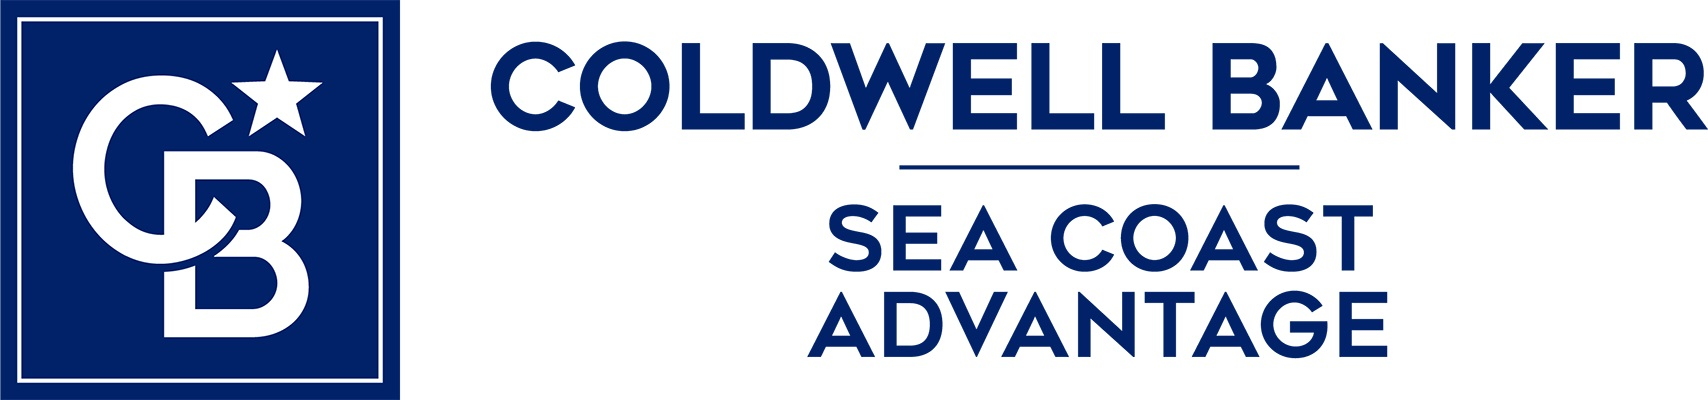 Debi Byrd - Coldwell Banker Sea Coast Advantage Realty